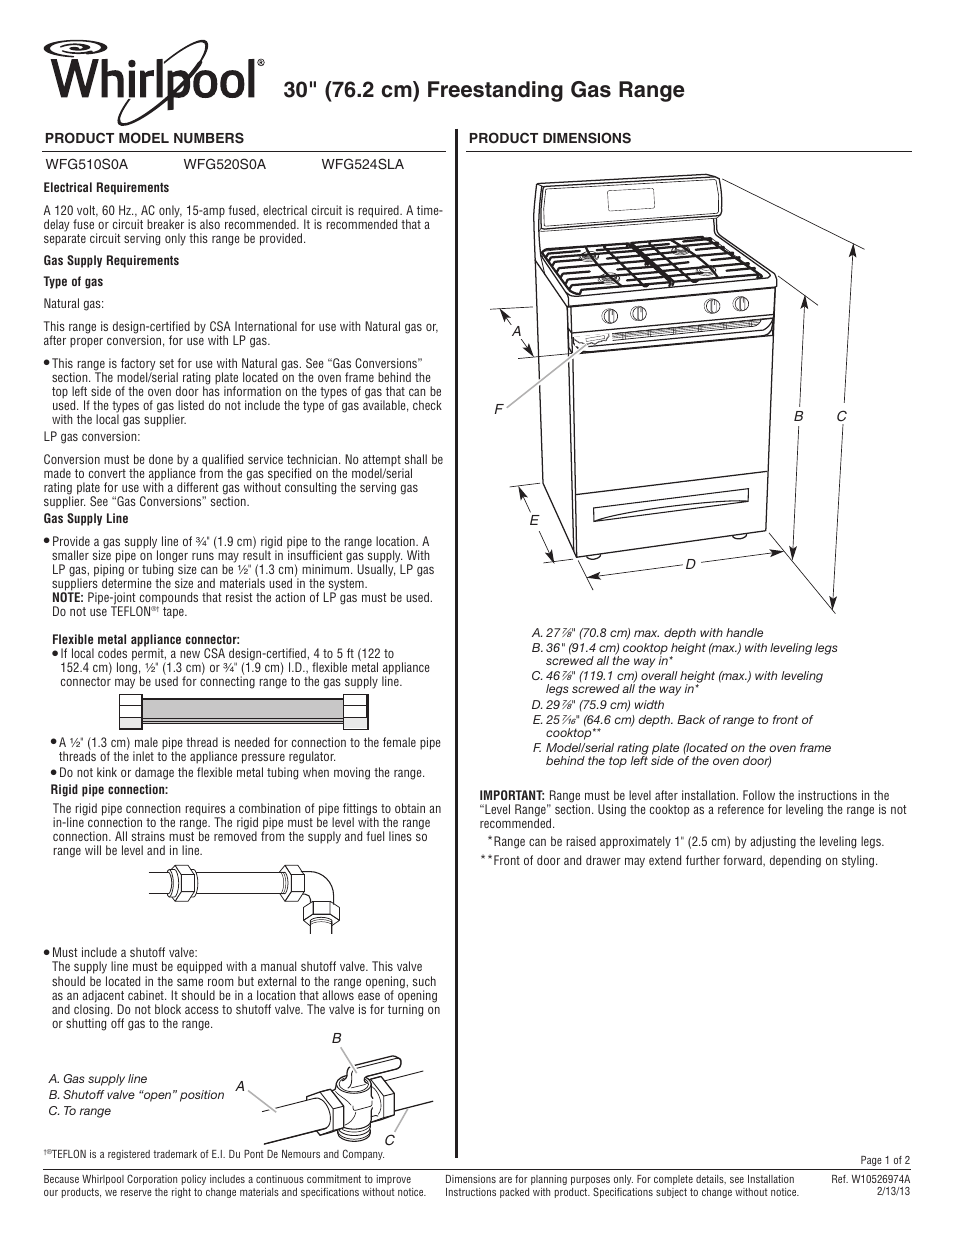 whirlpool wfg510s0as user manual 2 pages also for wfg520s0as rh manualsdir com whirlpool oven manual fxvm6 whirlpool oven manual ikea